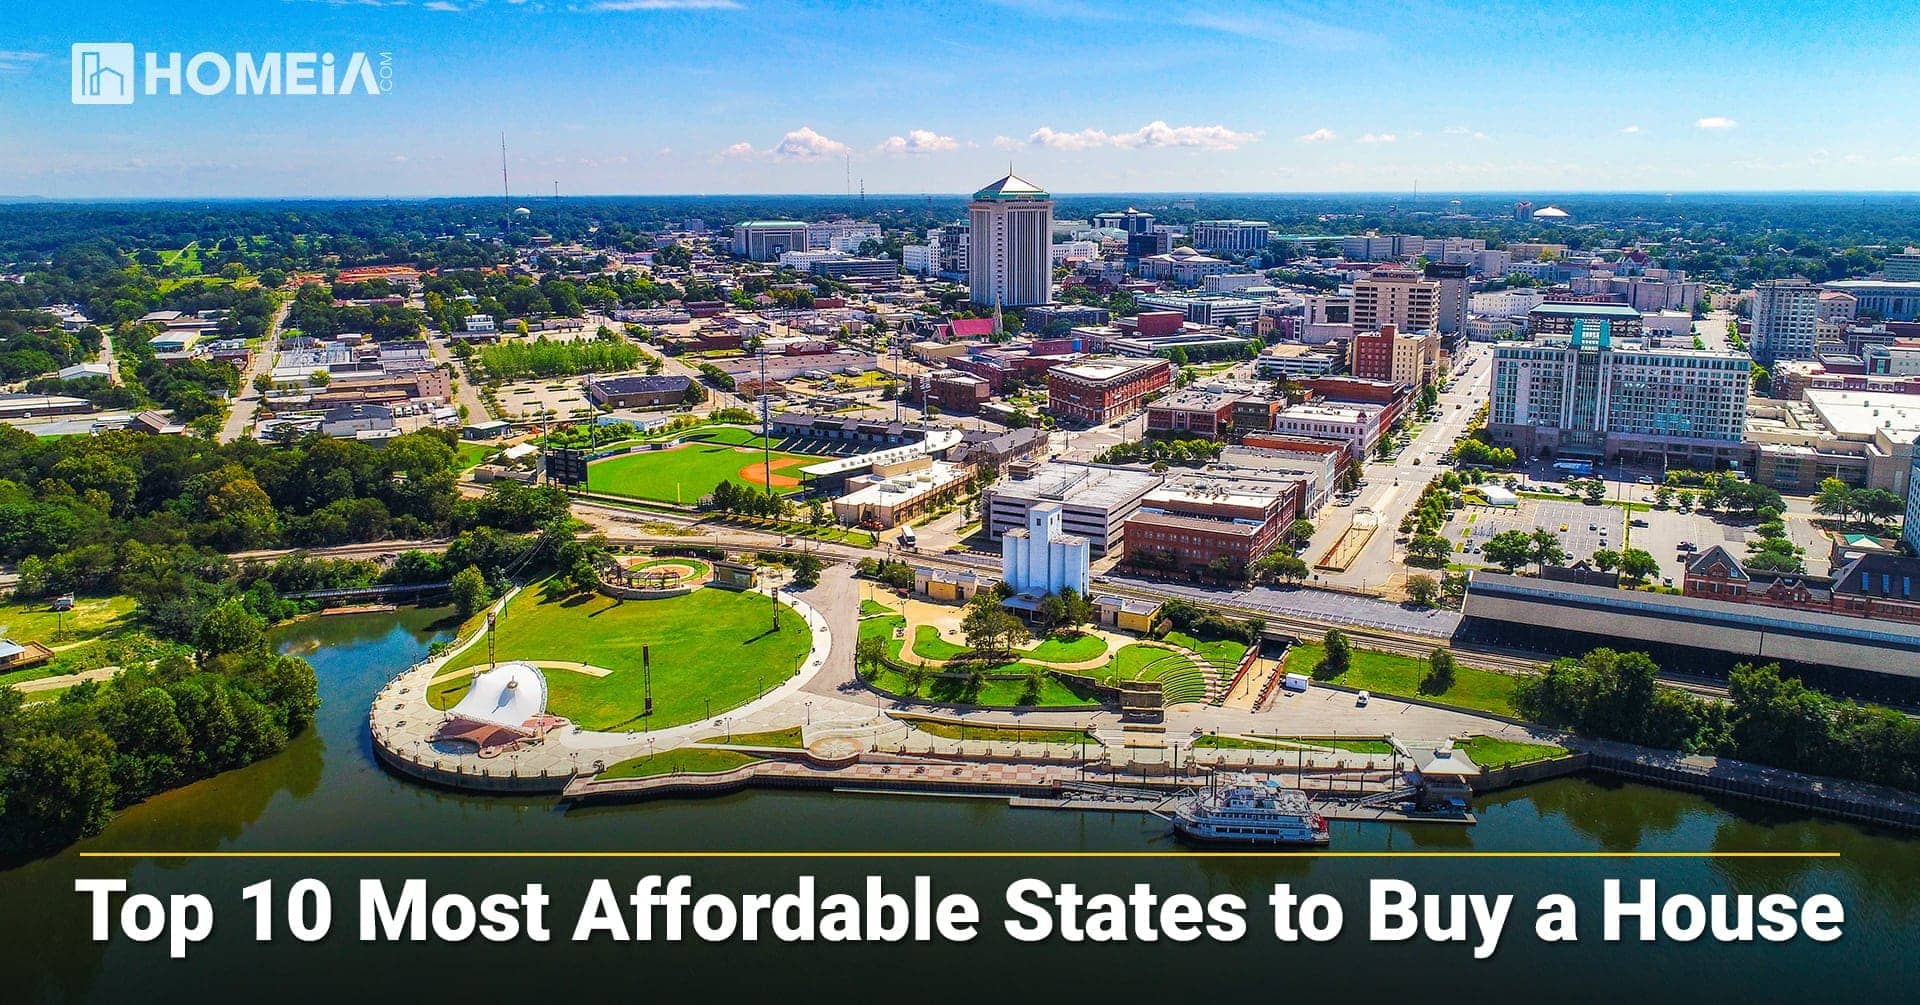 Top 10 Most Affordable States to Buy a House